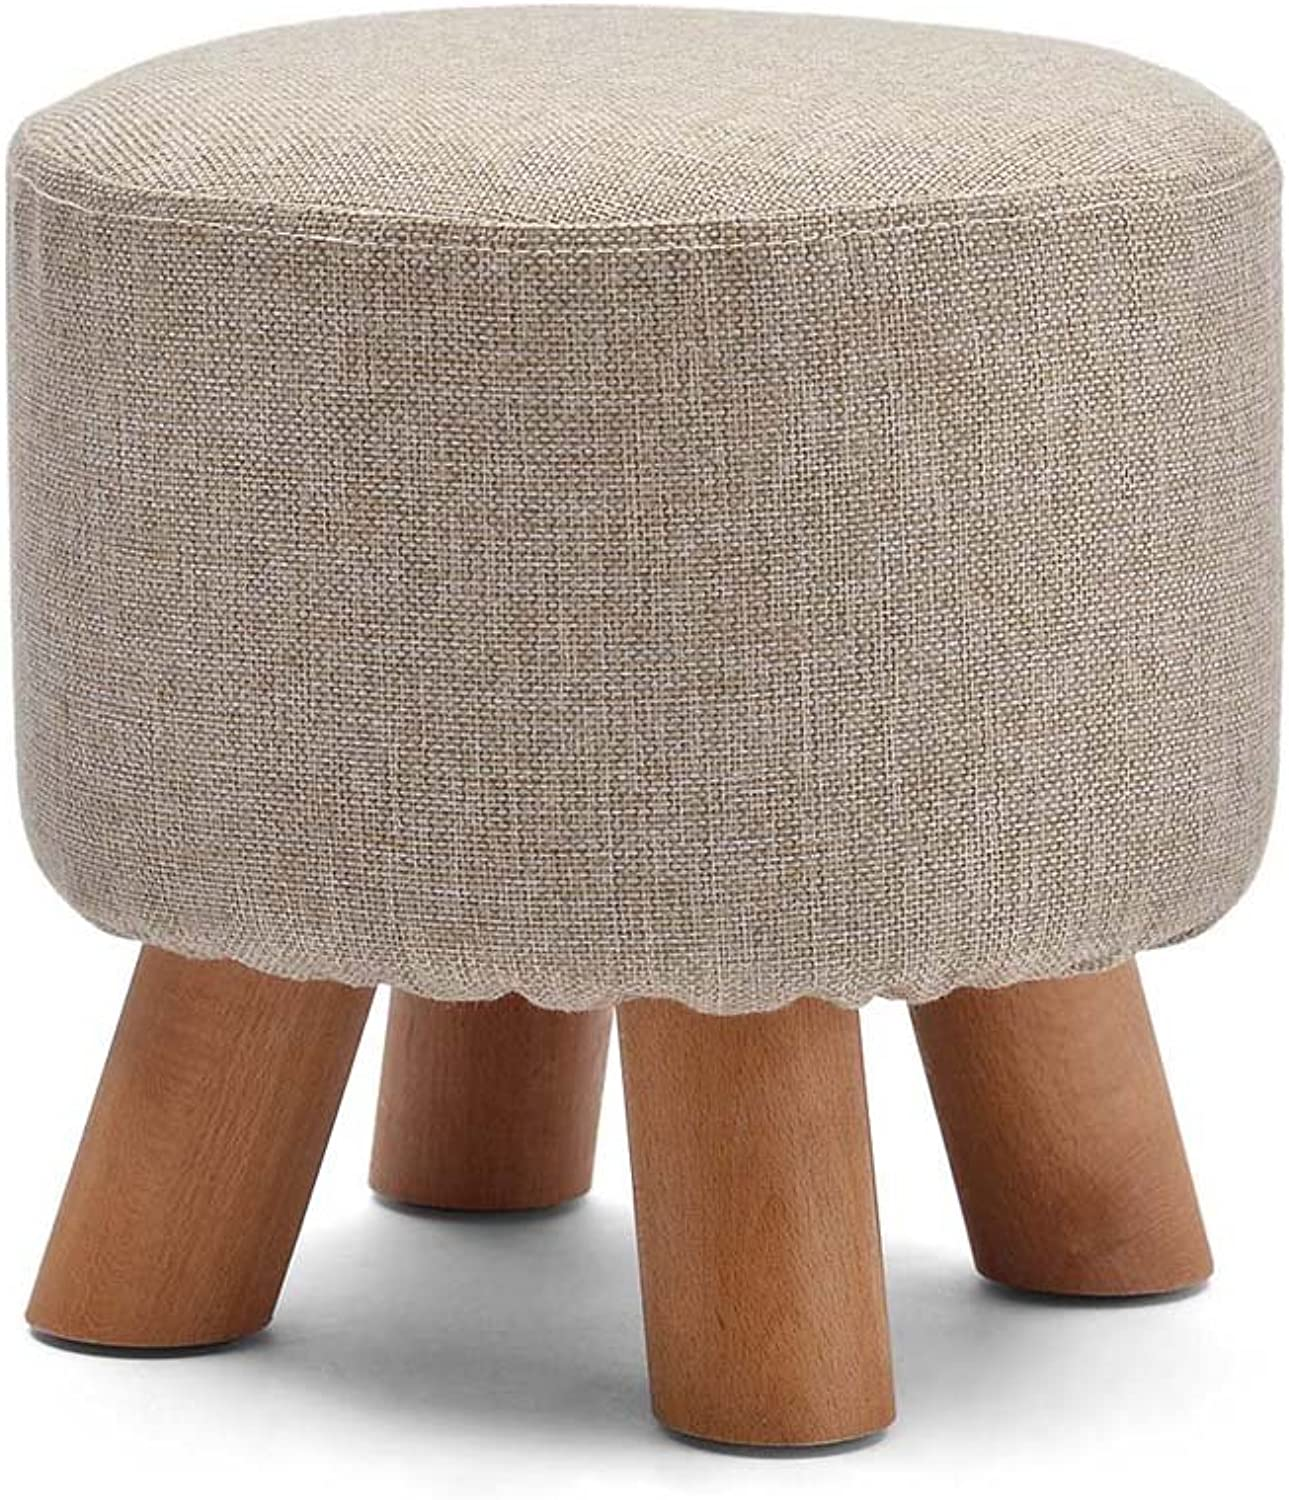 ZHANGRONG- Change shoes Stool Fashion Small Round Stool Solid Wood Low Stool Creative Wear shoes Stool Cloth Sofa Stool (a Variety of Styles Optional) (color   H)